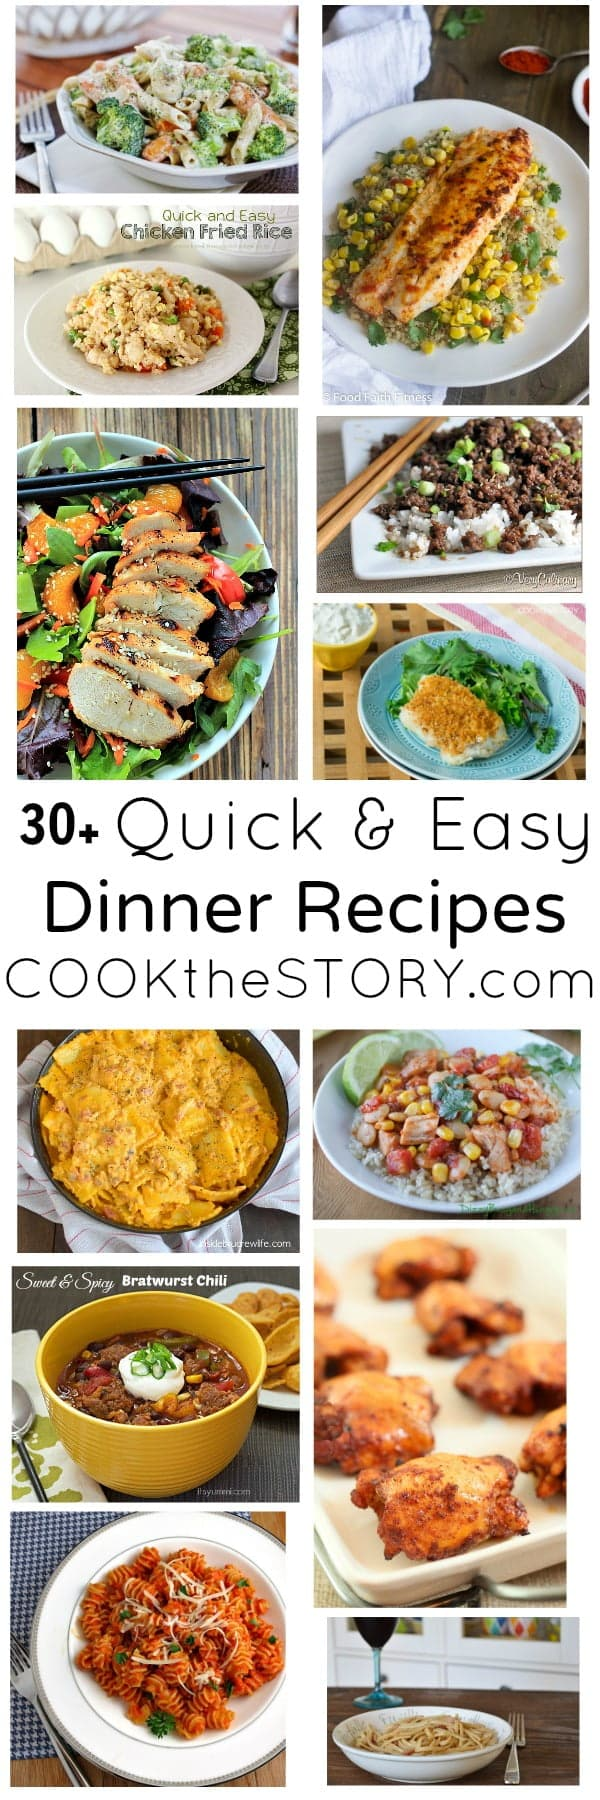 30+ Quick and Easy Weeknight Dinner Recipes - see the collection on COOKtheSTORY.com